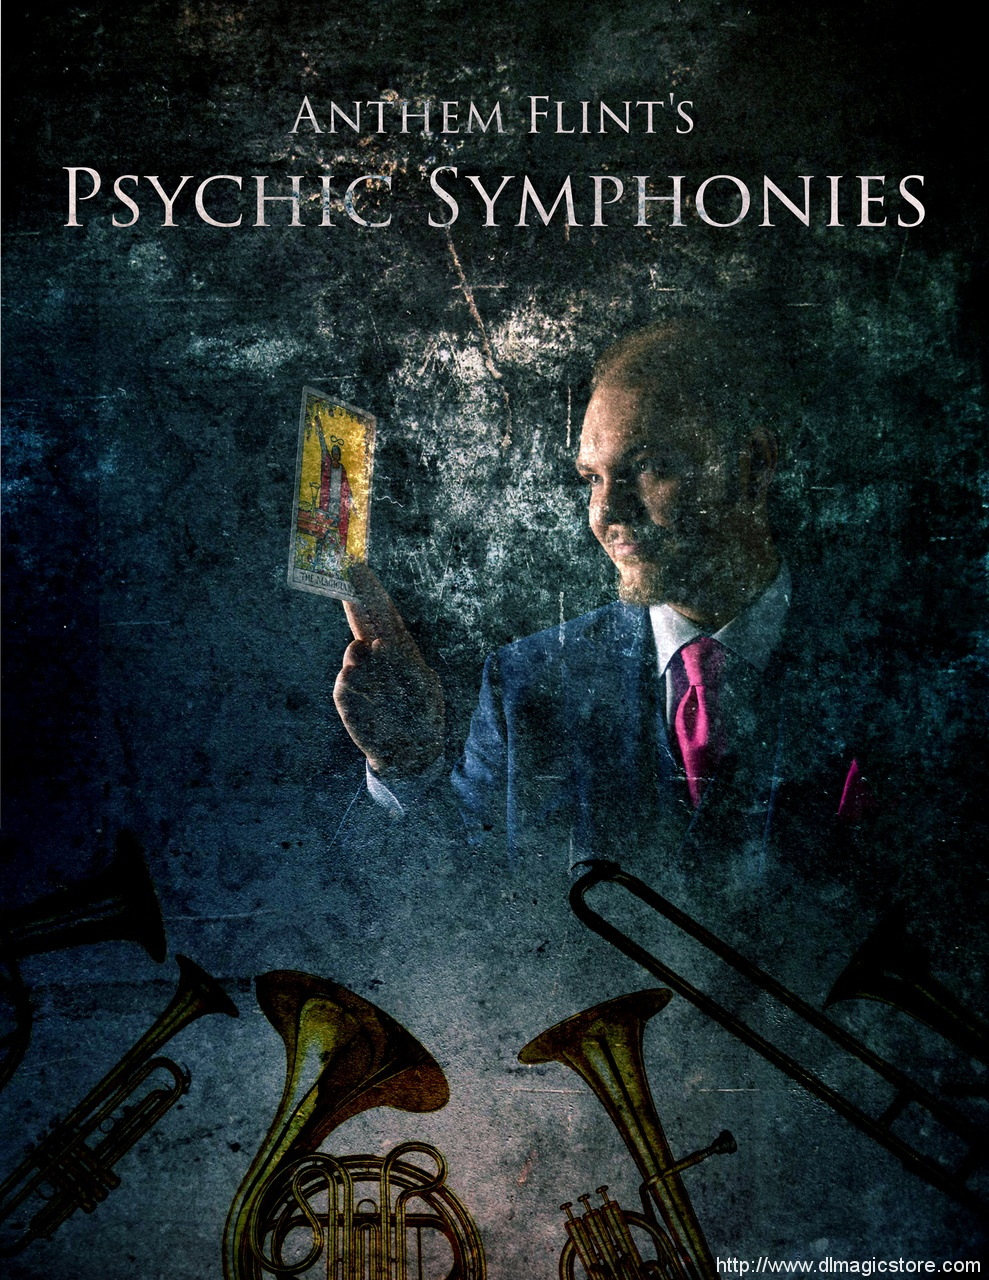 Psychic Symphonies by Anthem Flint (ebook) (Instant Download)